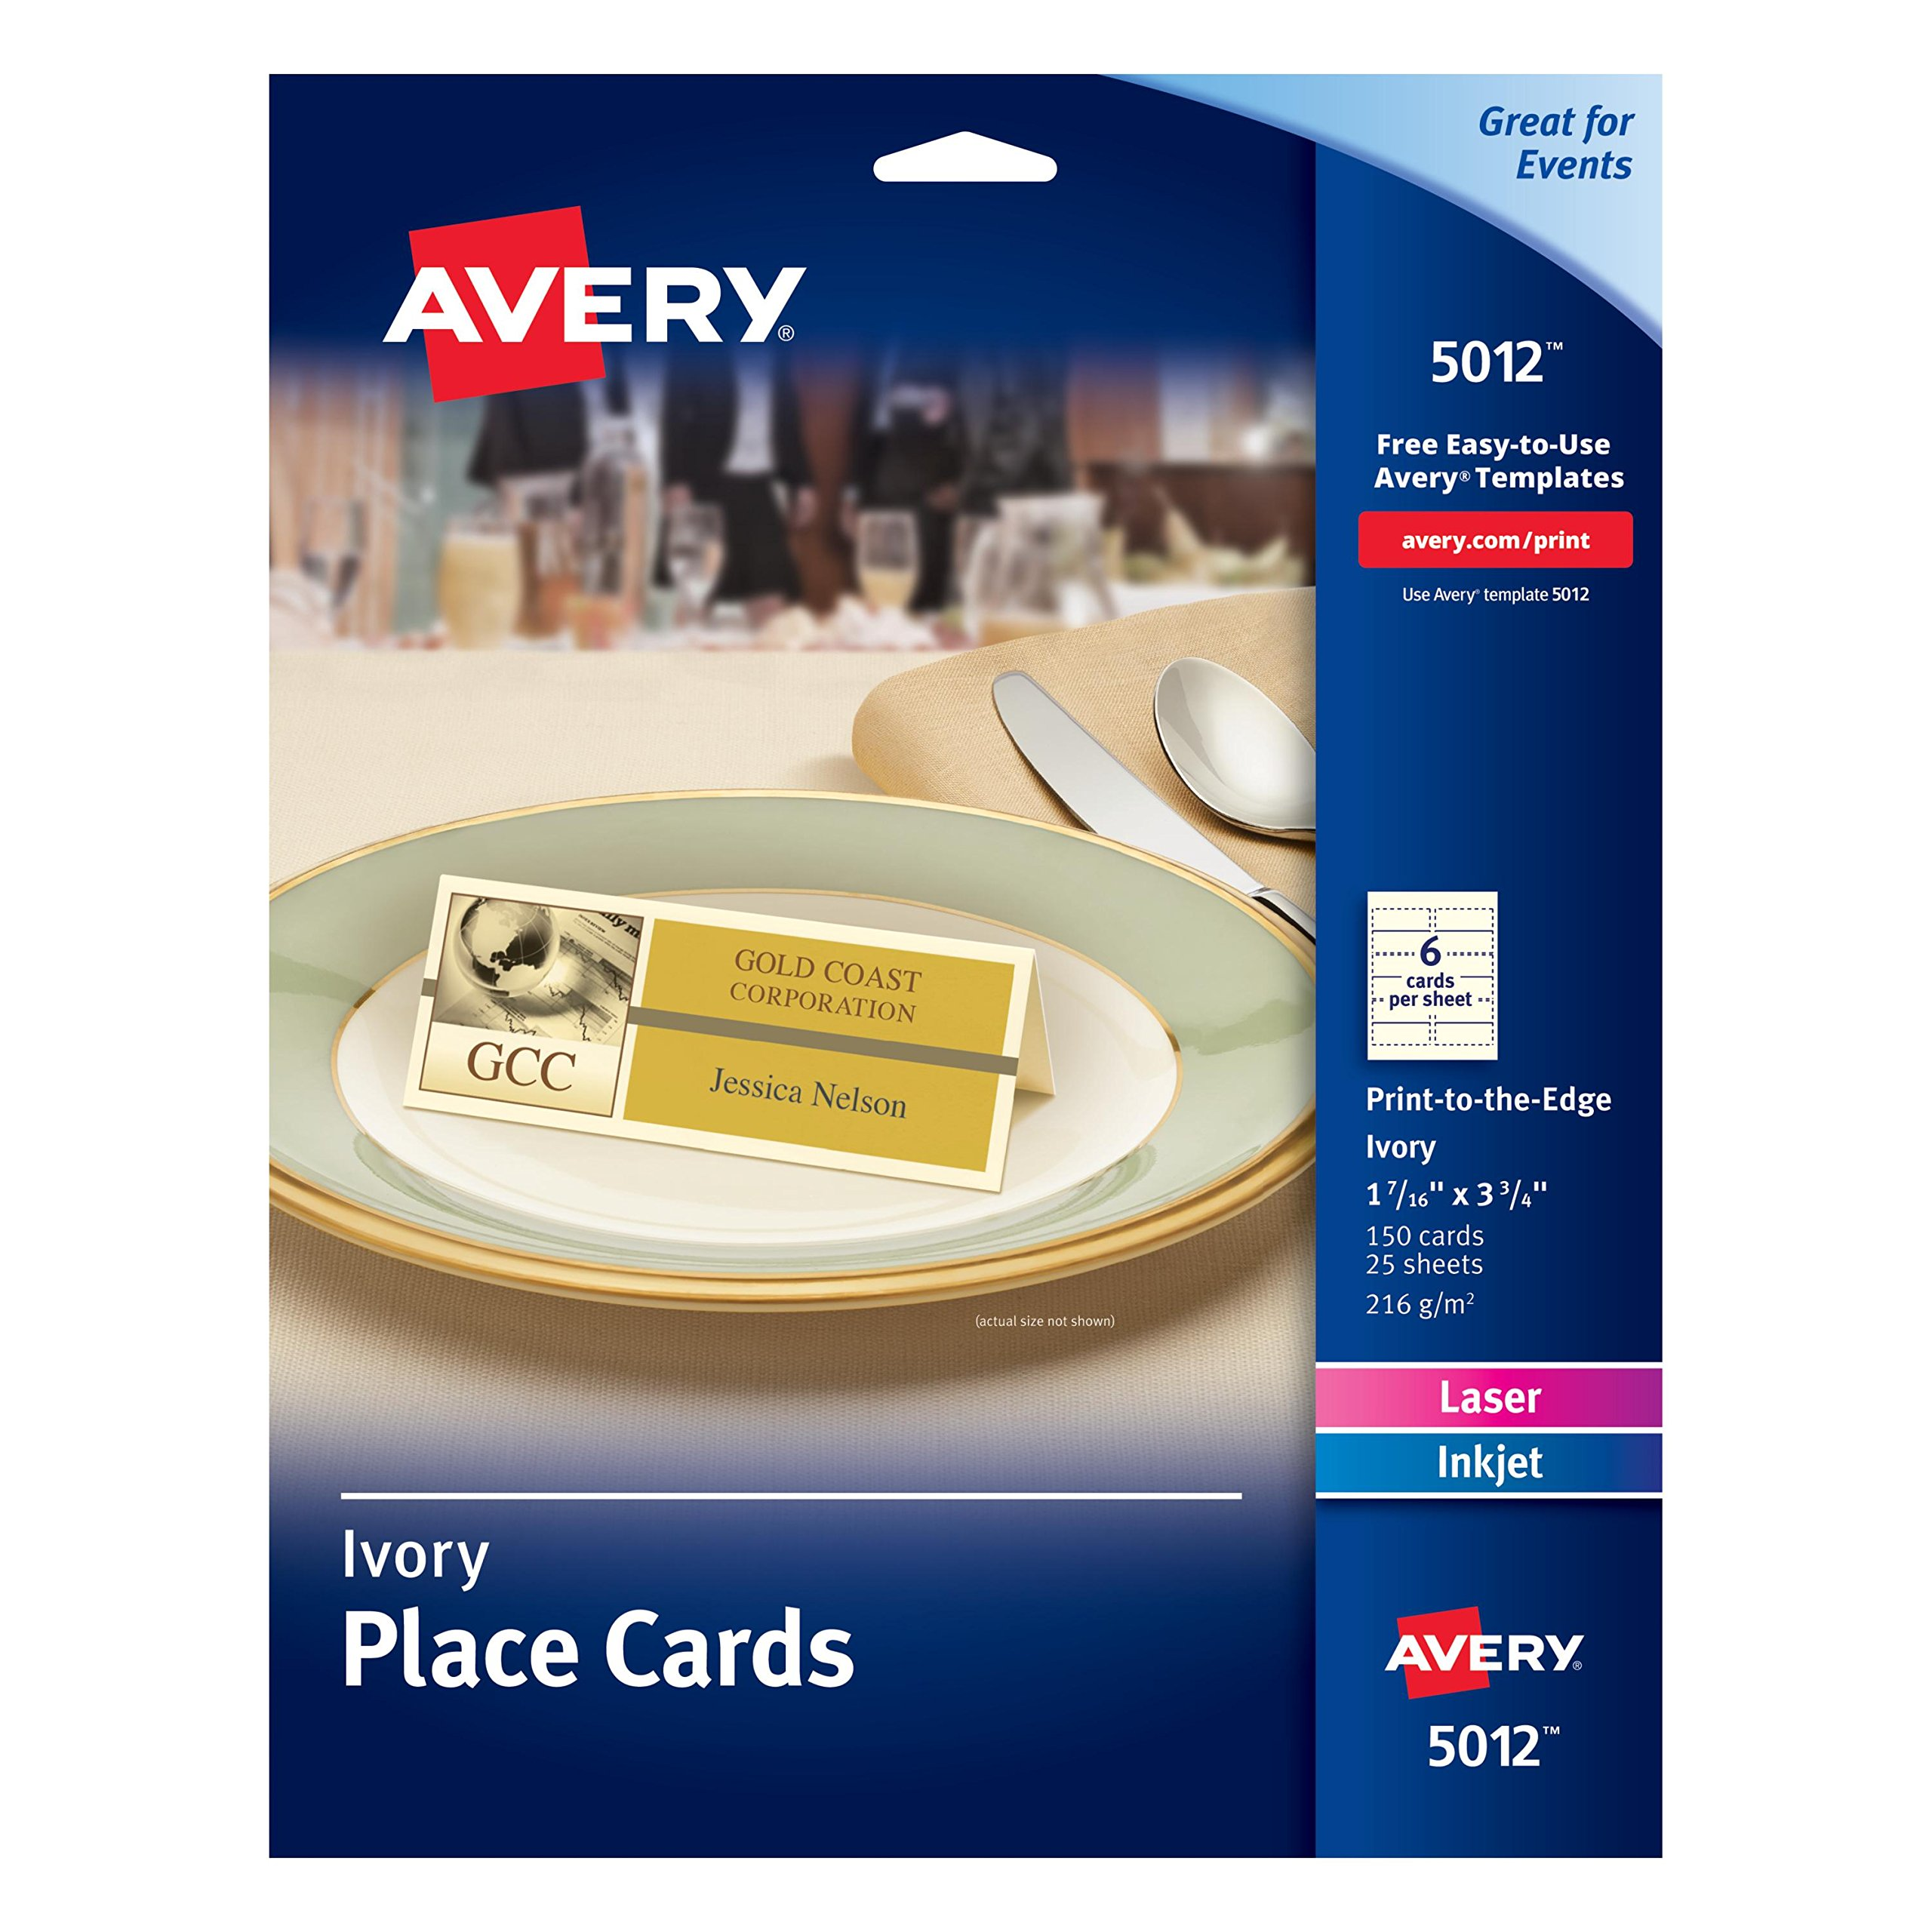 Avery Ivory Place Cards, Laser/Inkjet Printers, 1-7/16x3-3/4, Pack of 150 (5012) by AVERY